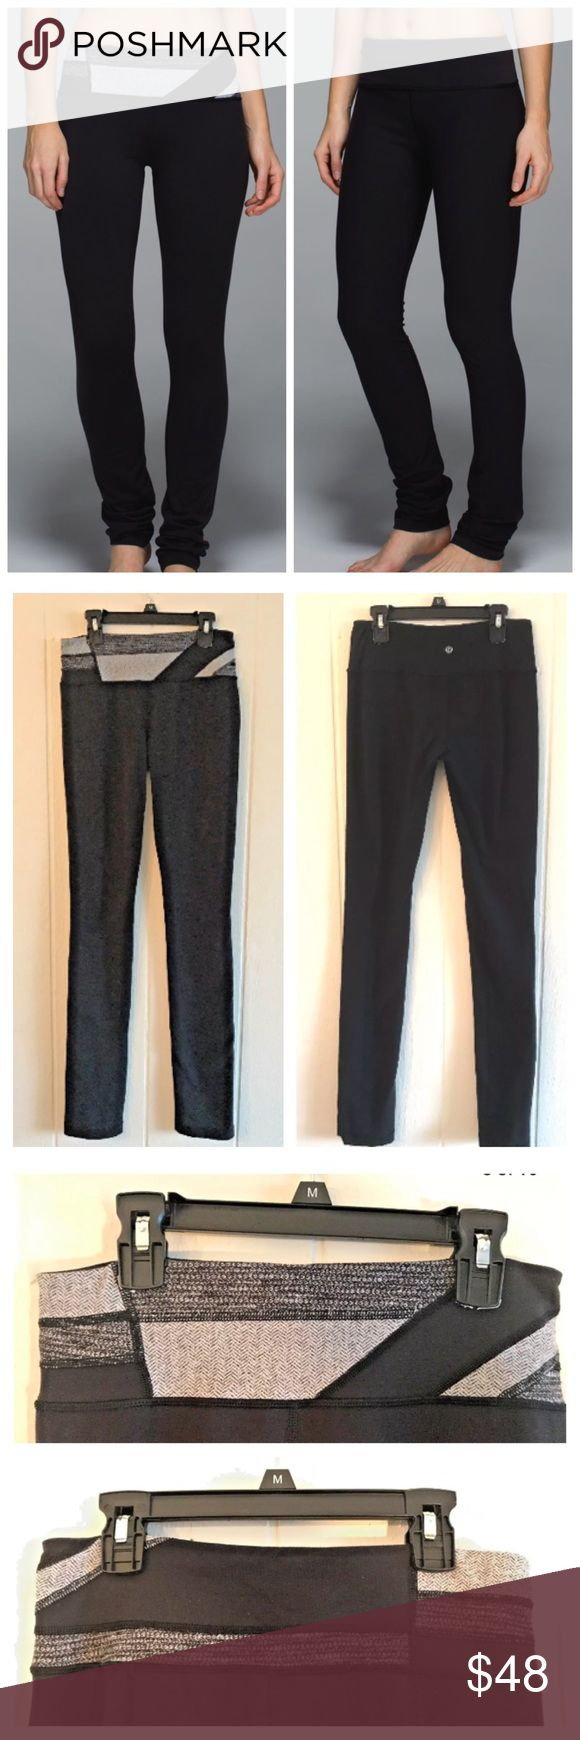 Lululemon Skinny Groove Pant Wi14 Q9 REVERSIBLE Lululemon Skinny Groove Pant Wi14 Quilt9 REVERSIBLE Coco Pique Herringbone Blk 4.                                            Good preowned condition, some pilling in expected locations, otherwise normal wear still in good condition and have lots of life left.                                                   Approximate measurements laying flat in inches: Waist= 14 Rise = 10 Inseam= 33…